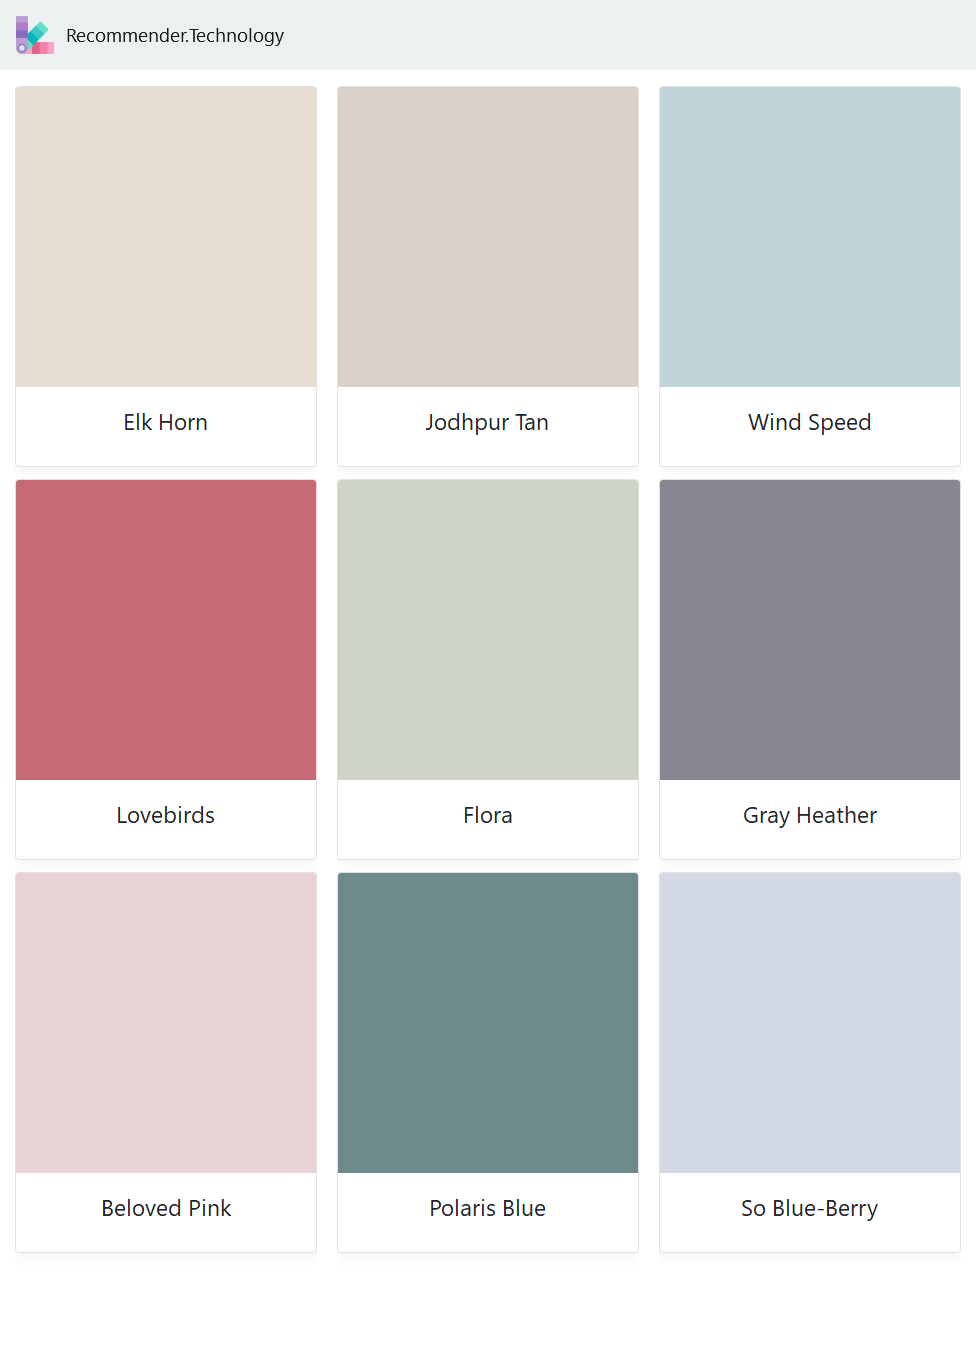 Elk Horn, Lovebirds, Beloved Pink, Jodhpur Tan, Flora, Polaris Blue, Wind Speed, Gray Heather, So Blue-Berry